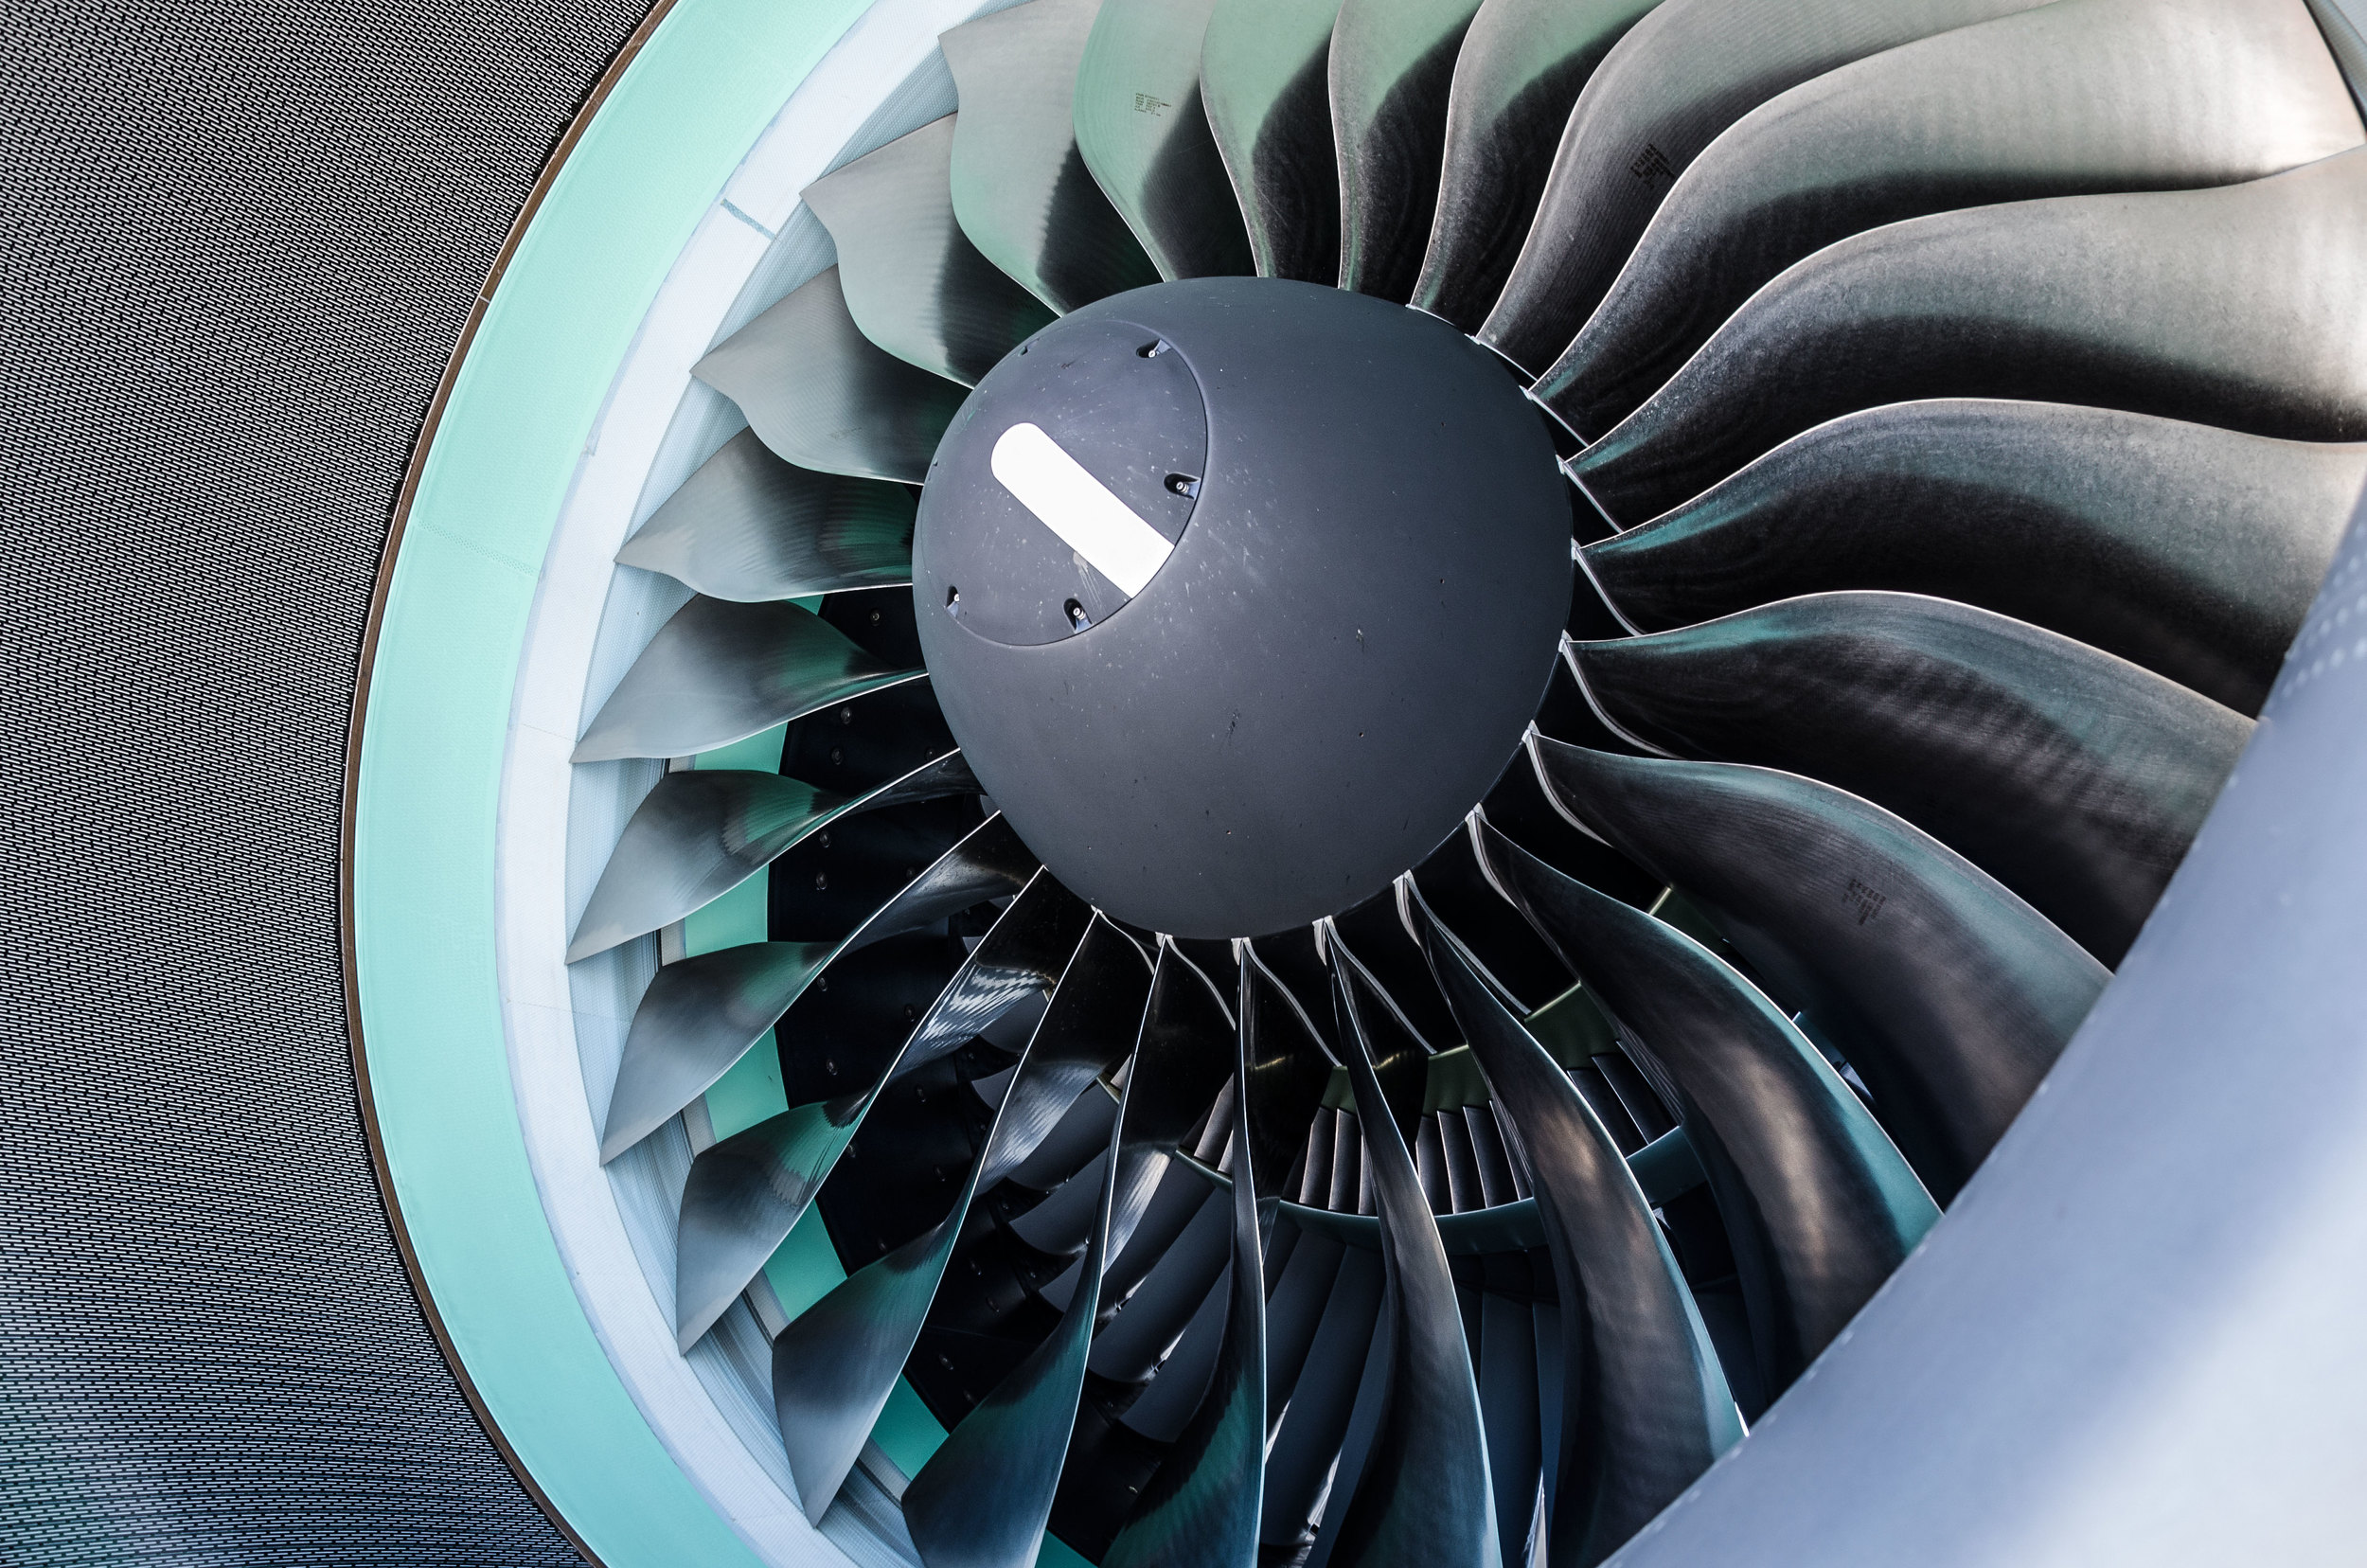 It is powered by 4 engines generating up to 320kN of power, each!